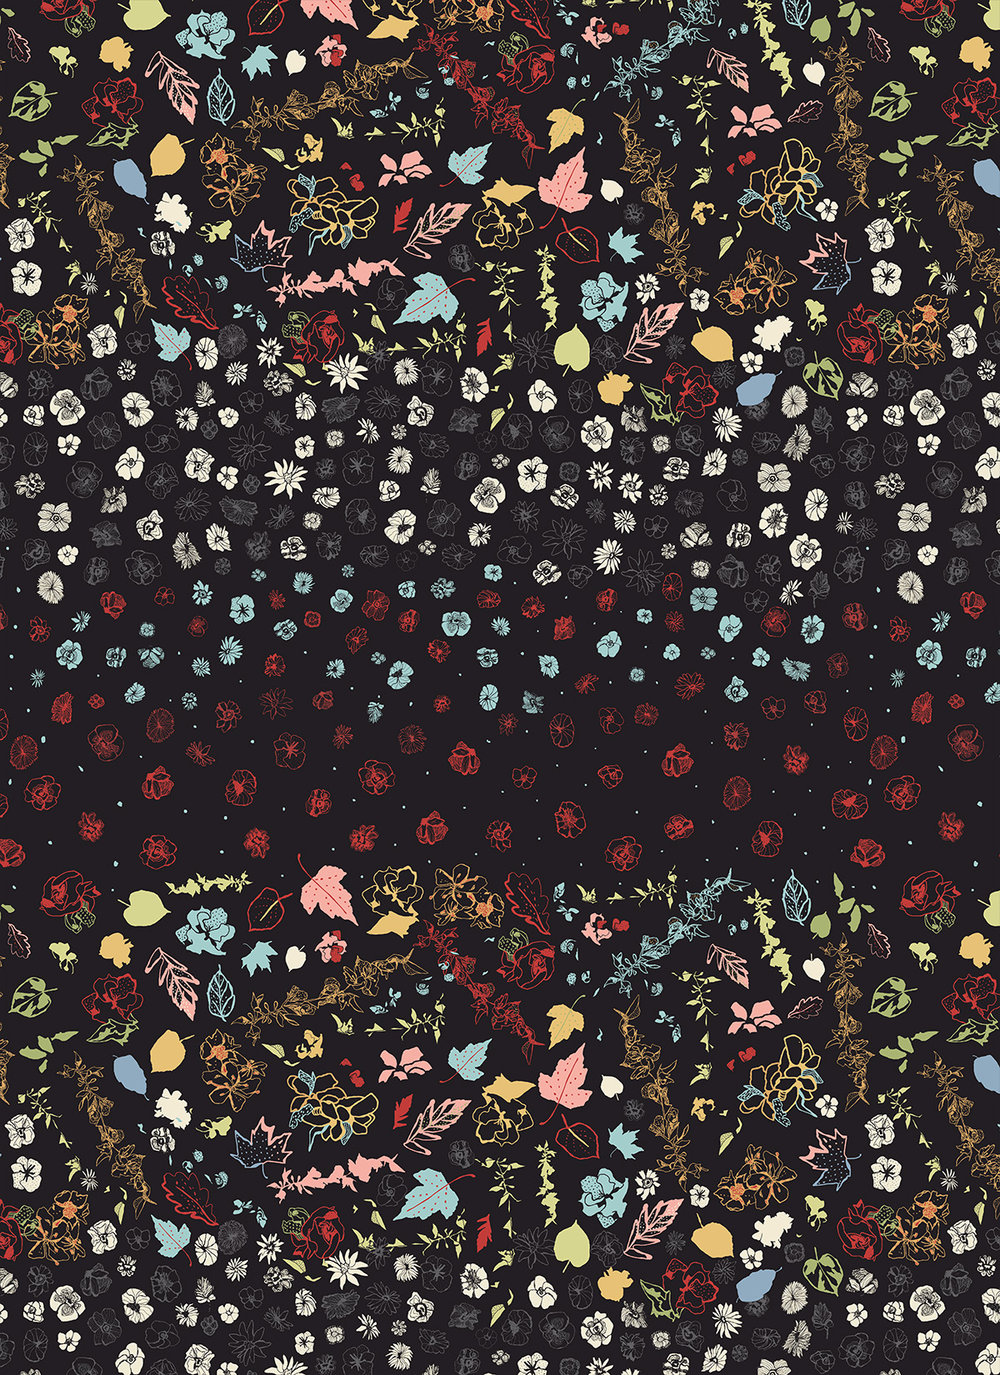 FLORAL. PATTERN 2